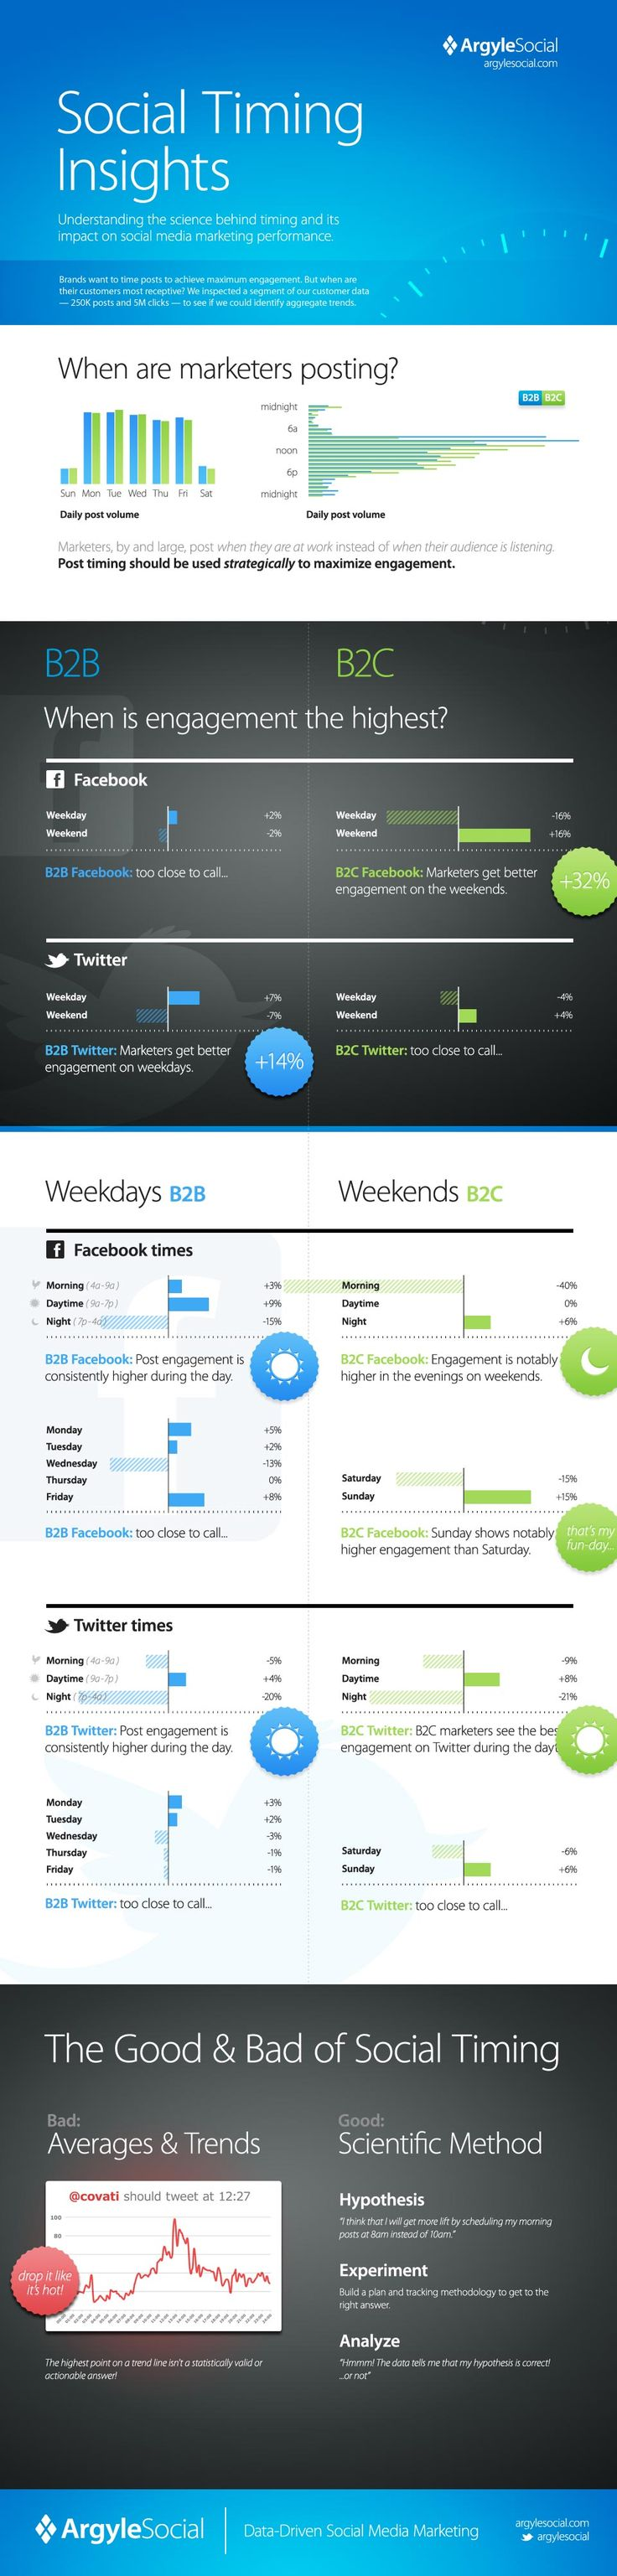 Timing your social media usage #infographic